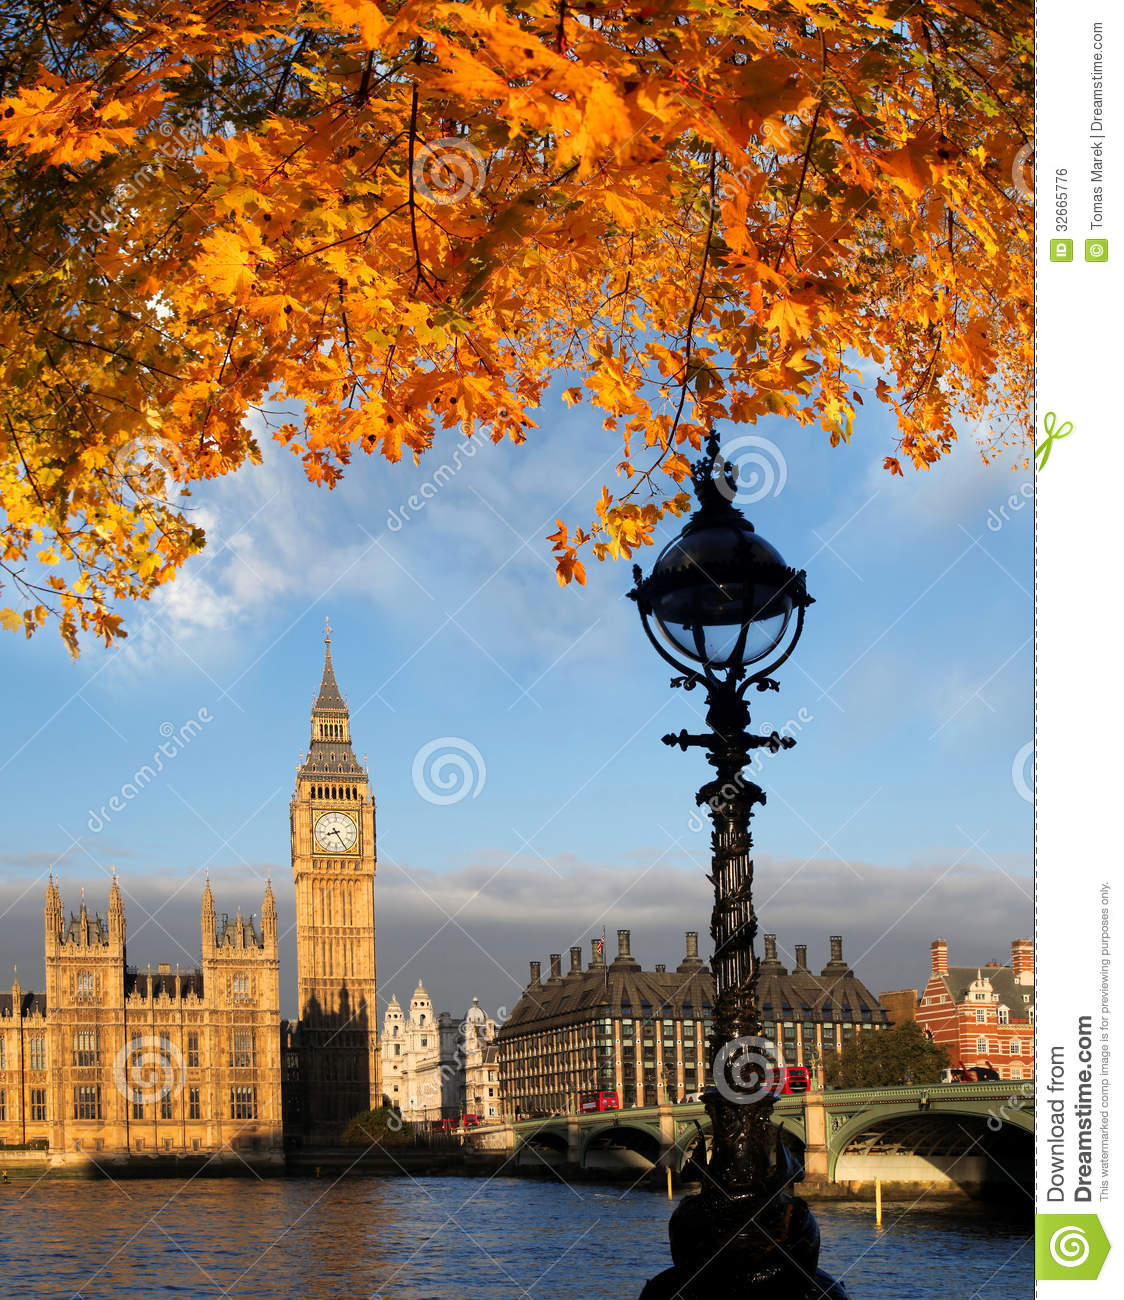 Big Ben With Autumn Leaves In London, England Stock Photo